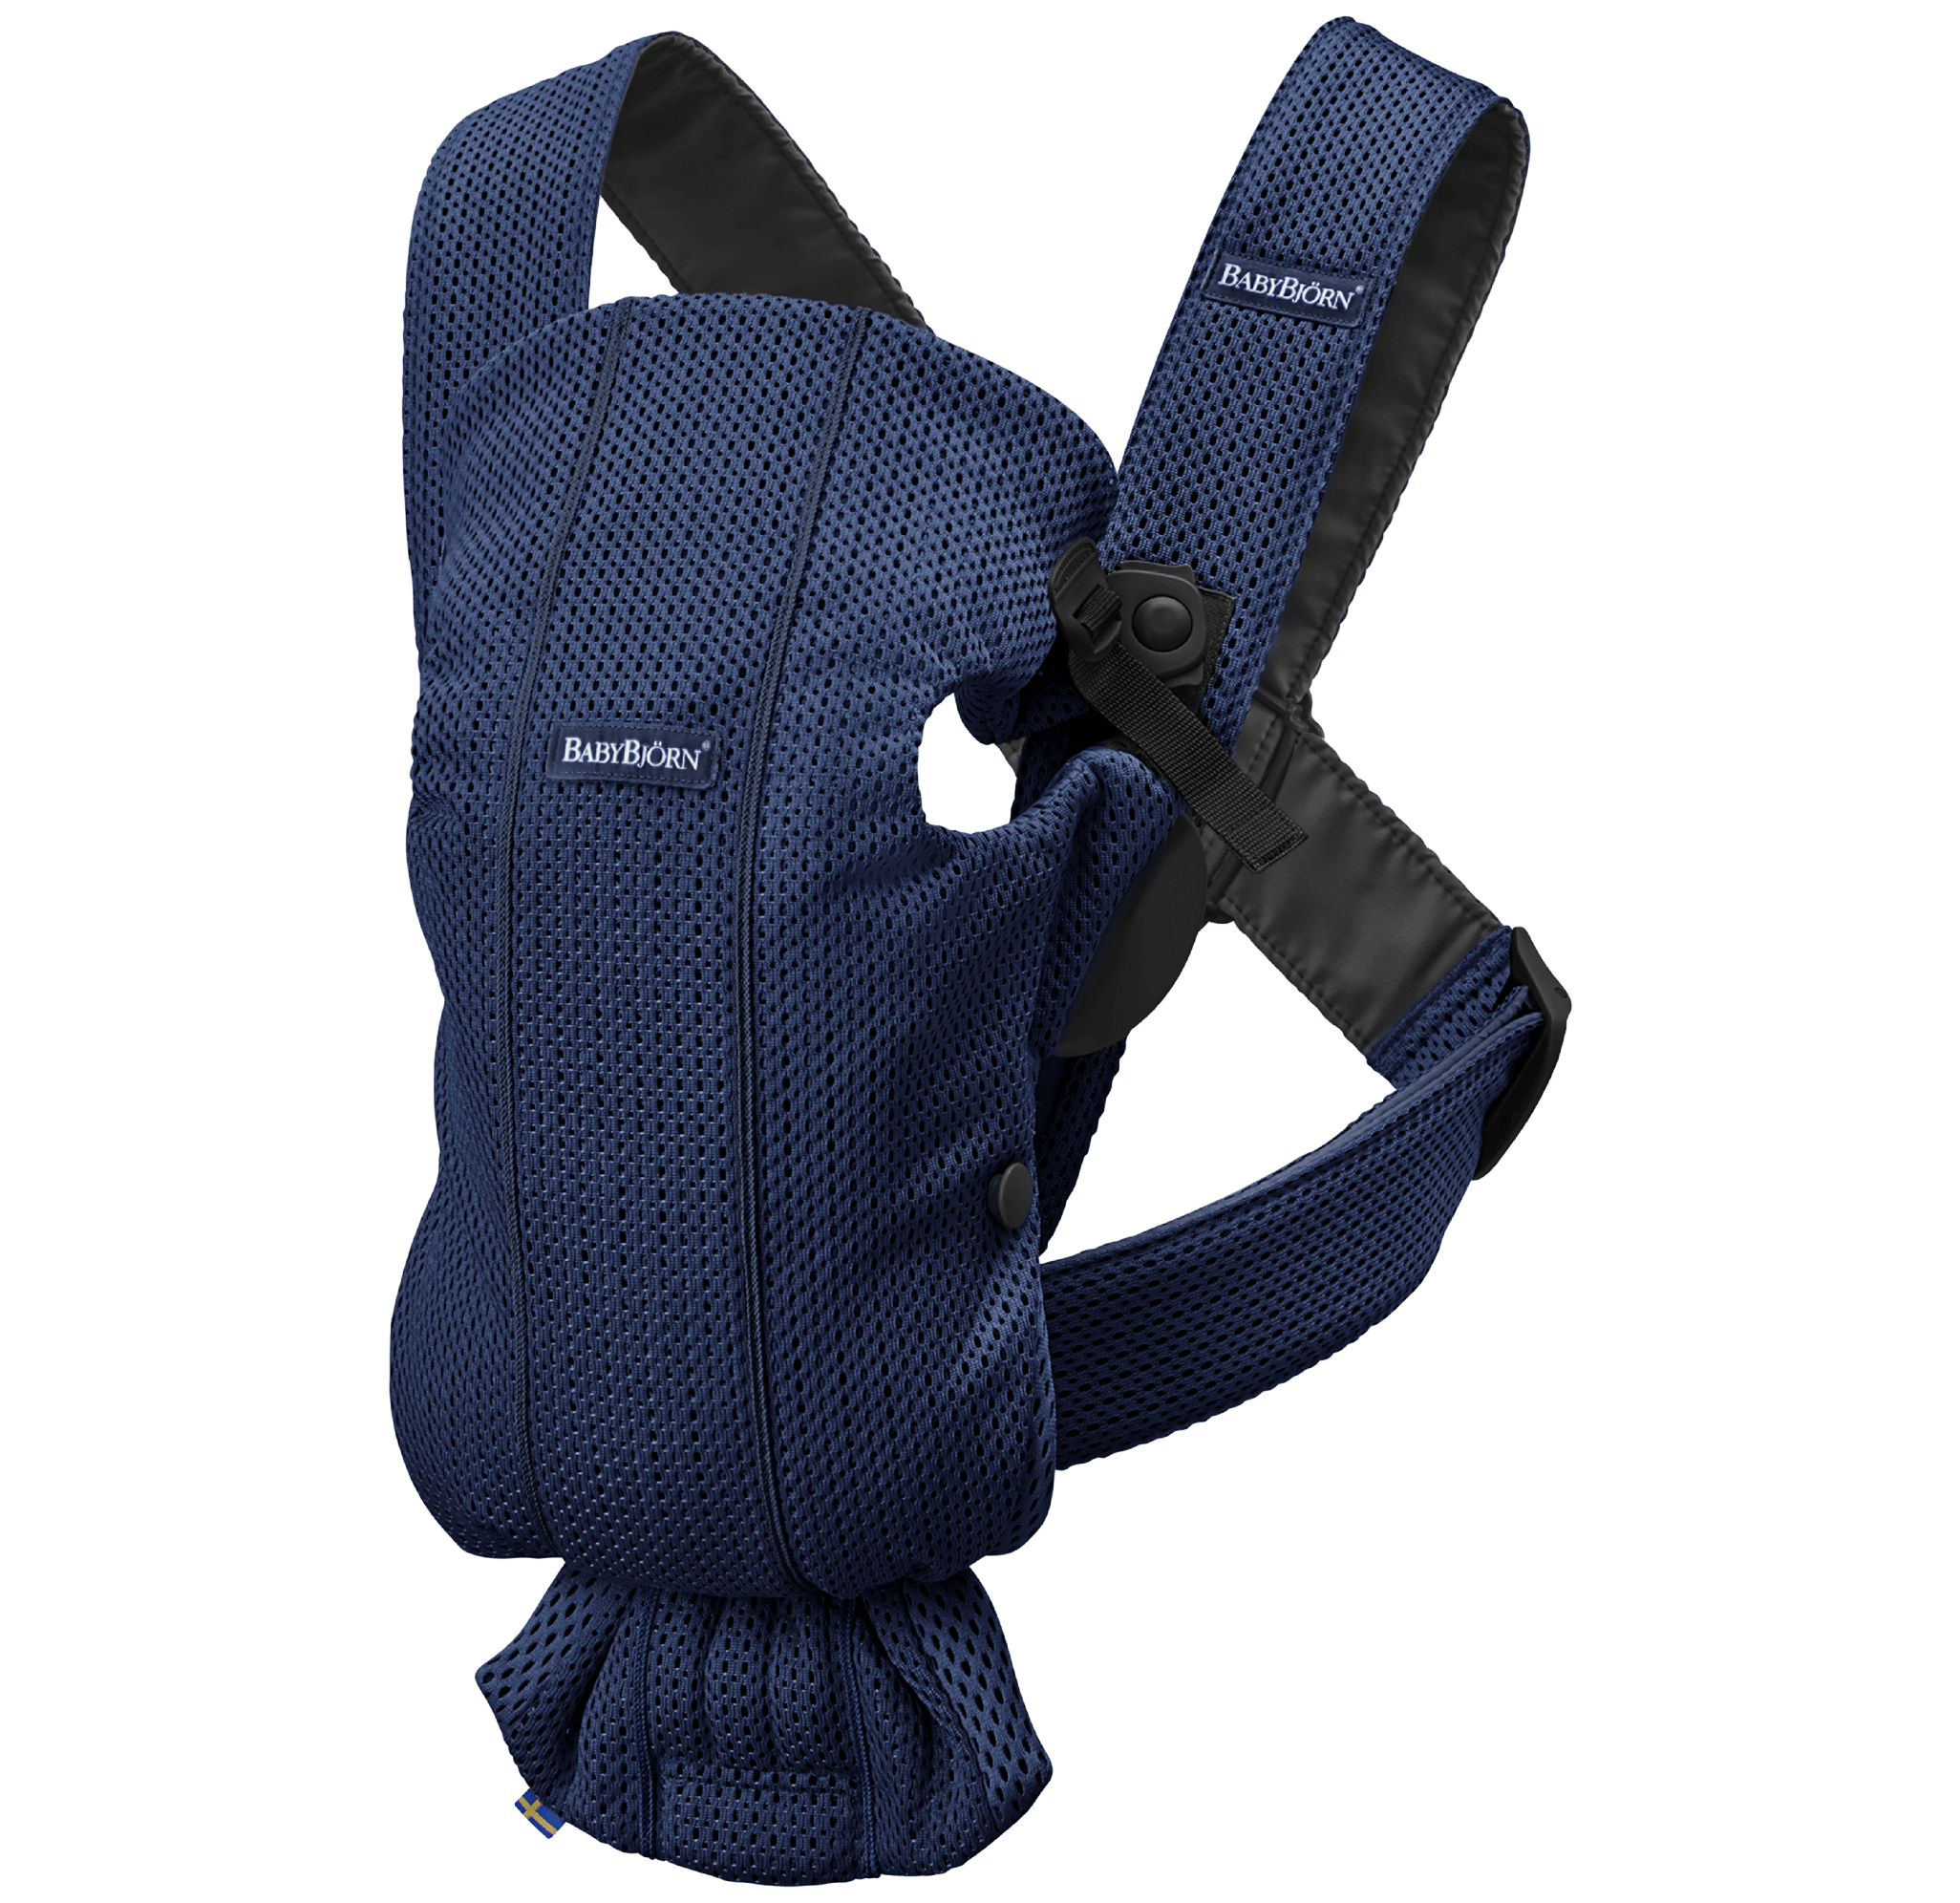 Baby Carrier Mini Navy Blue 3D Mesh, new colors 2019, 021008 - BABYBJORN